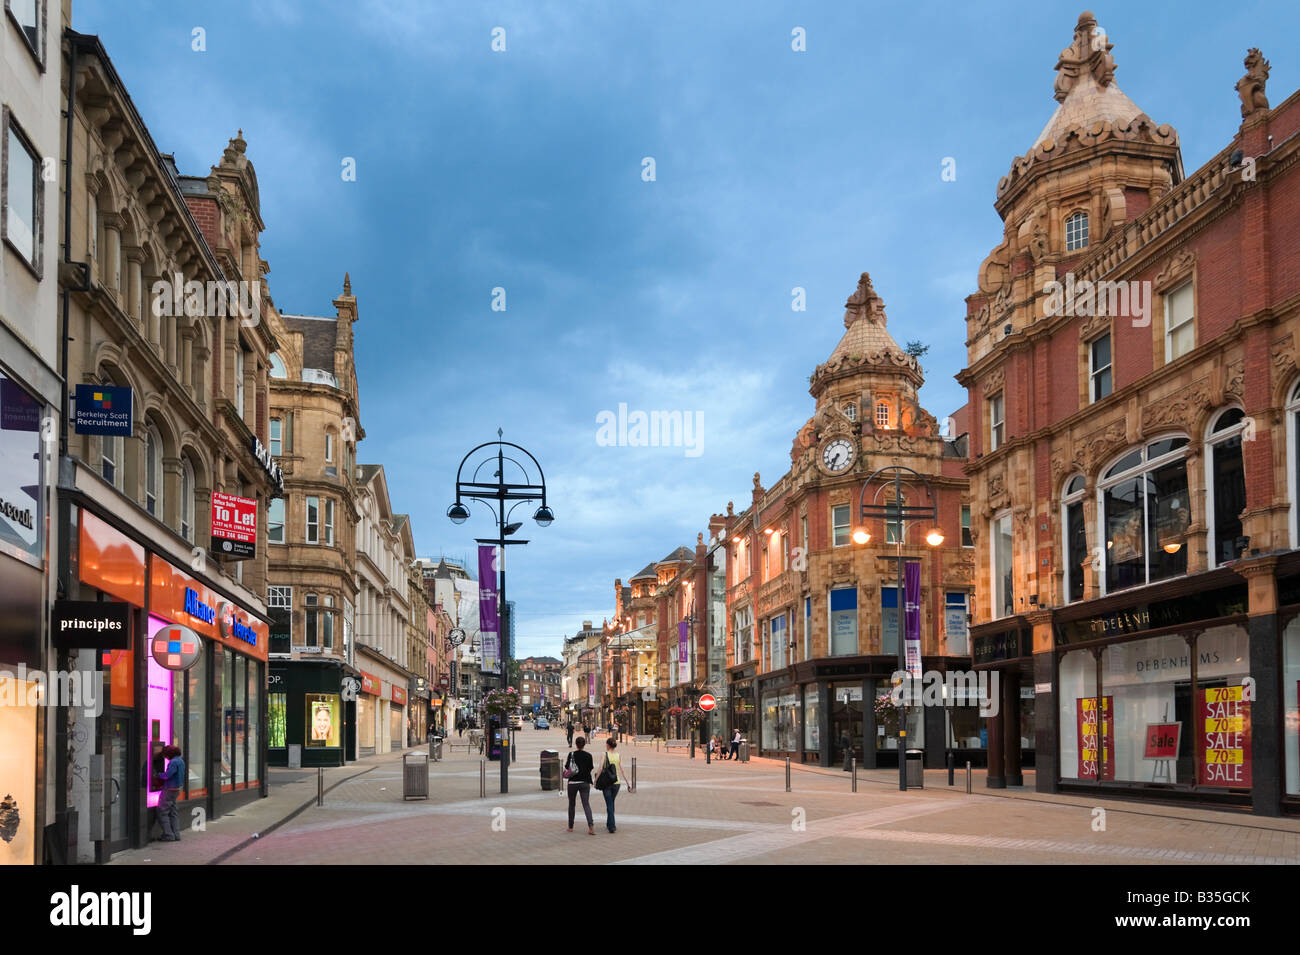 Briggate (the main shopping street in the city centre) in the evening, Leeds, West Yorkshire, England - Stock Image